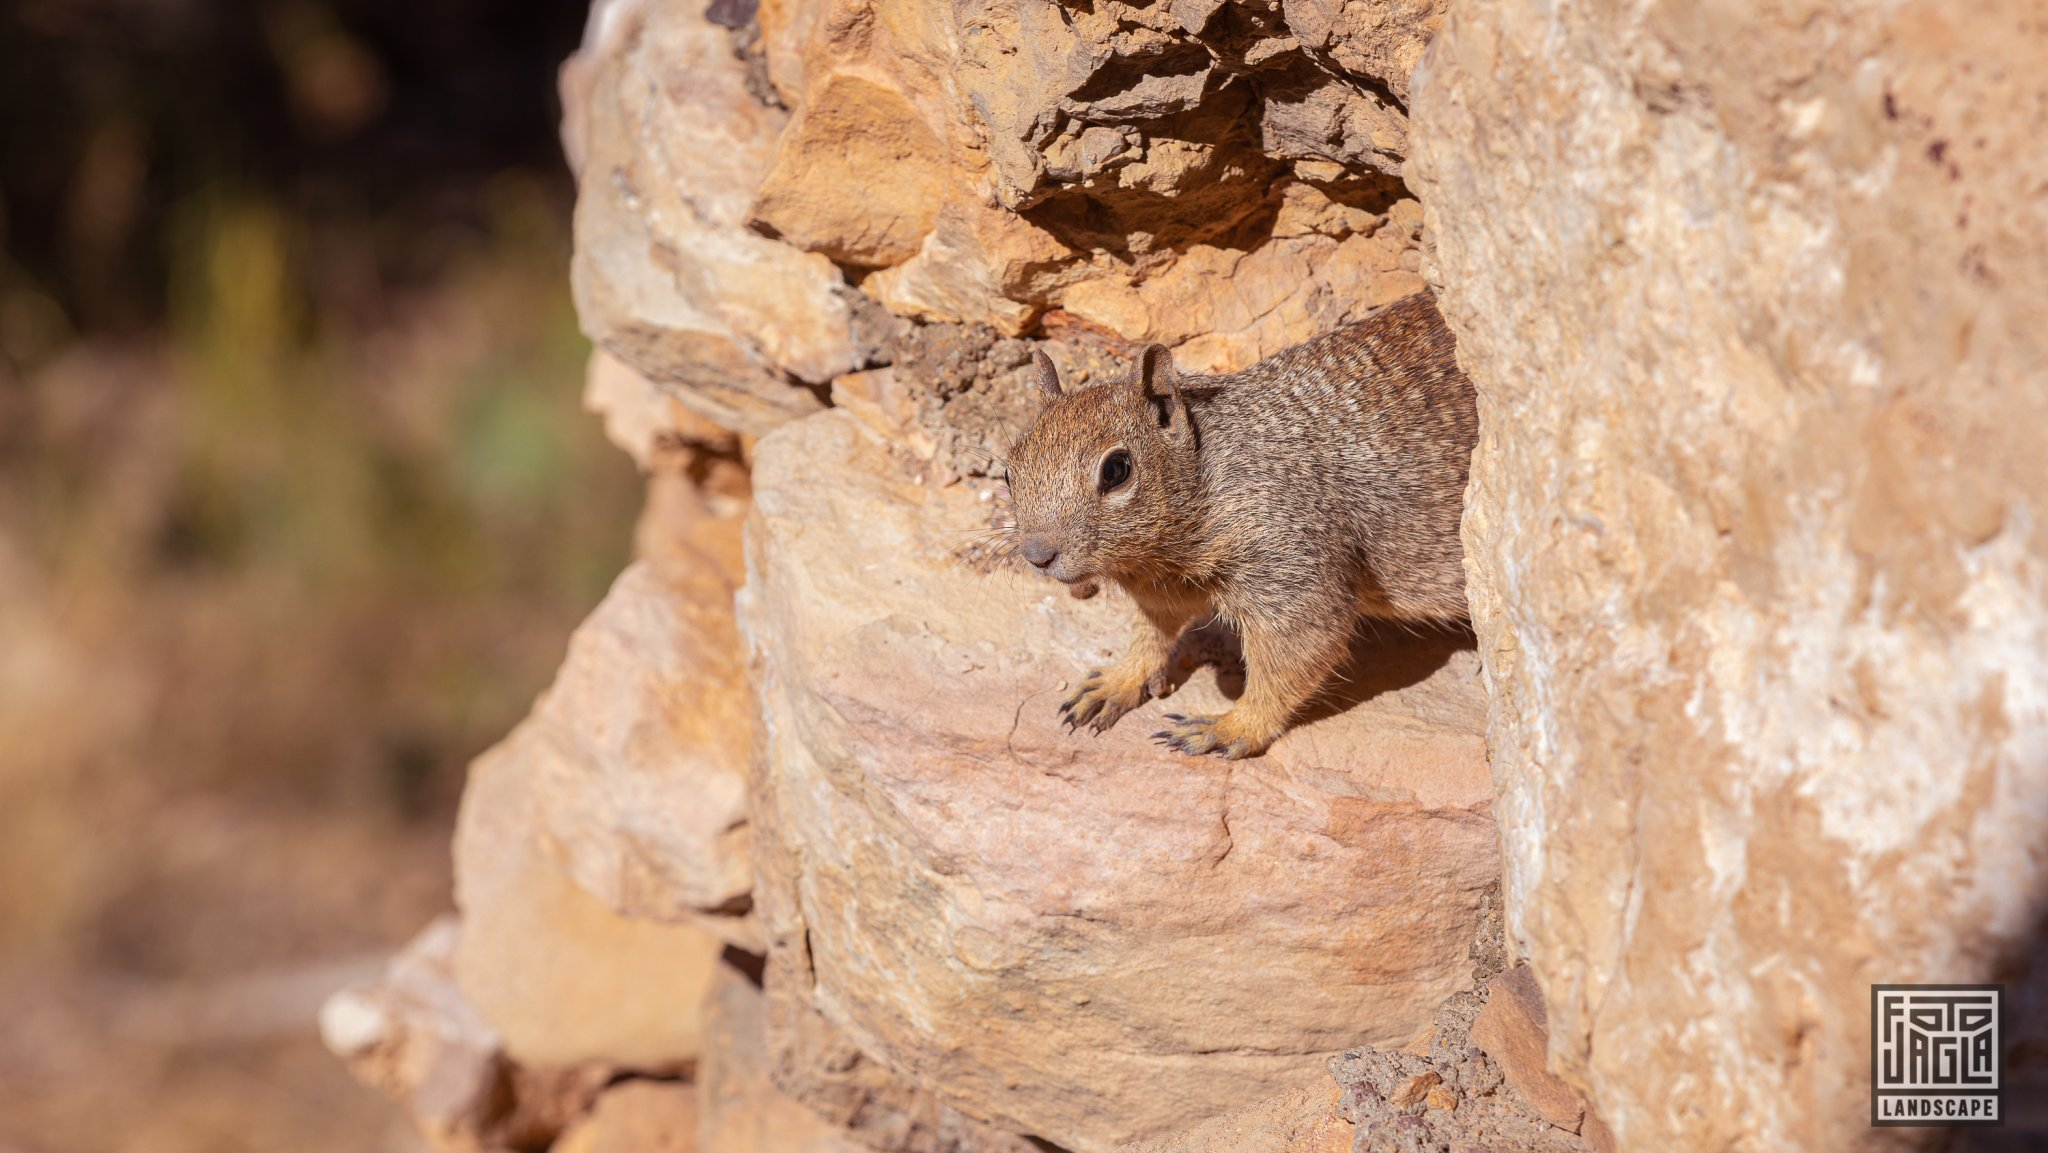 Cute squirrel at Hermit's Rest Viewpoint in Grand Canyon Village